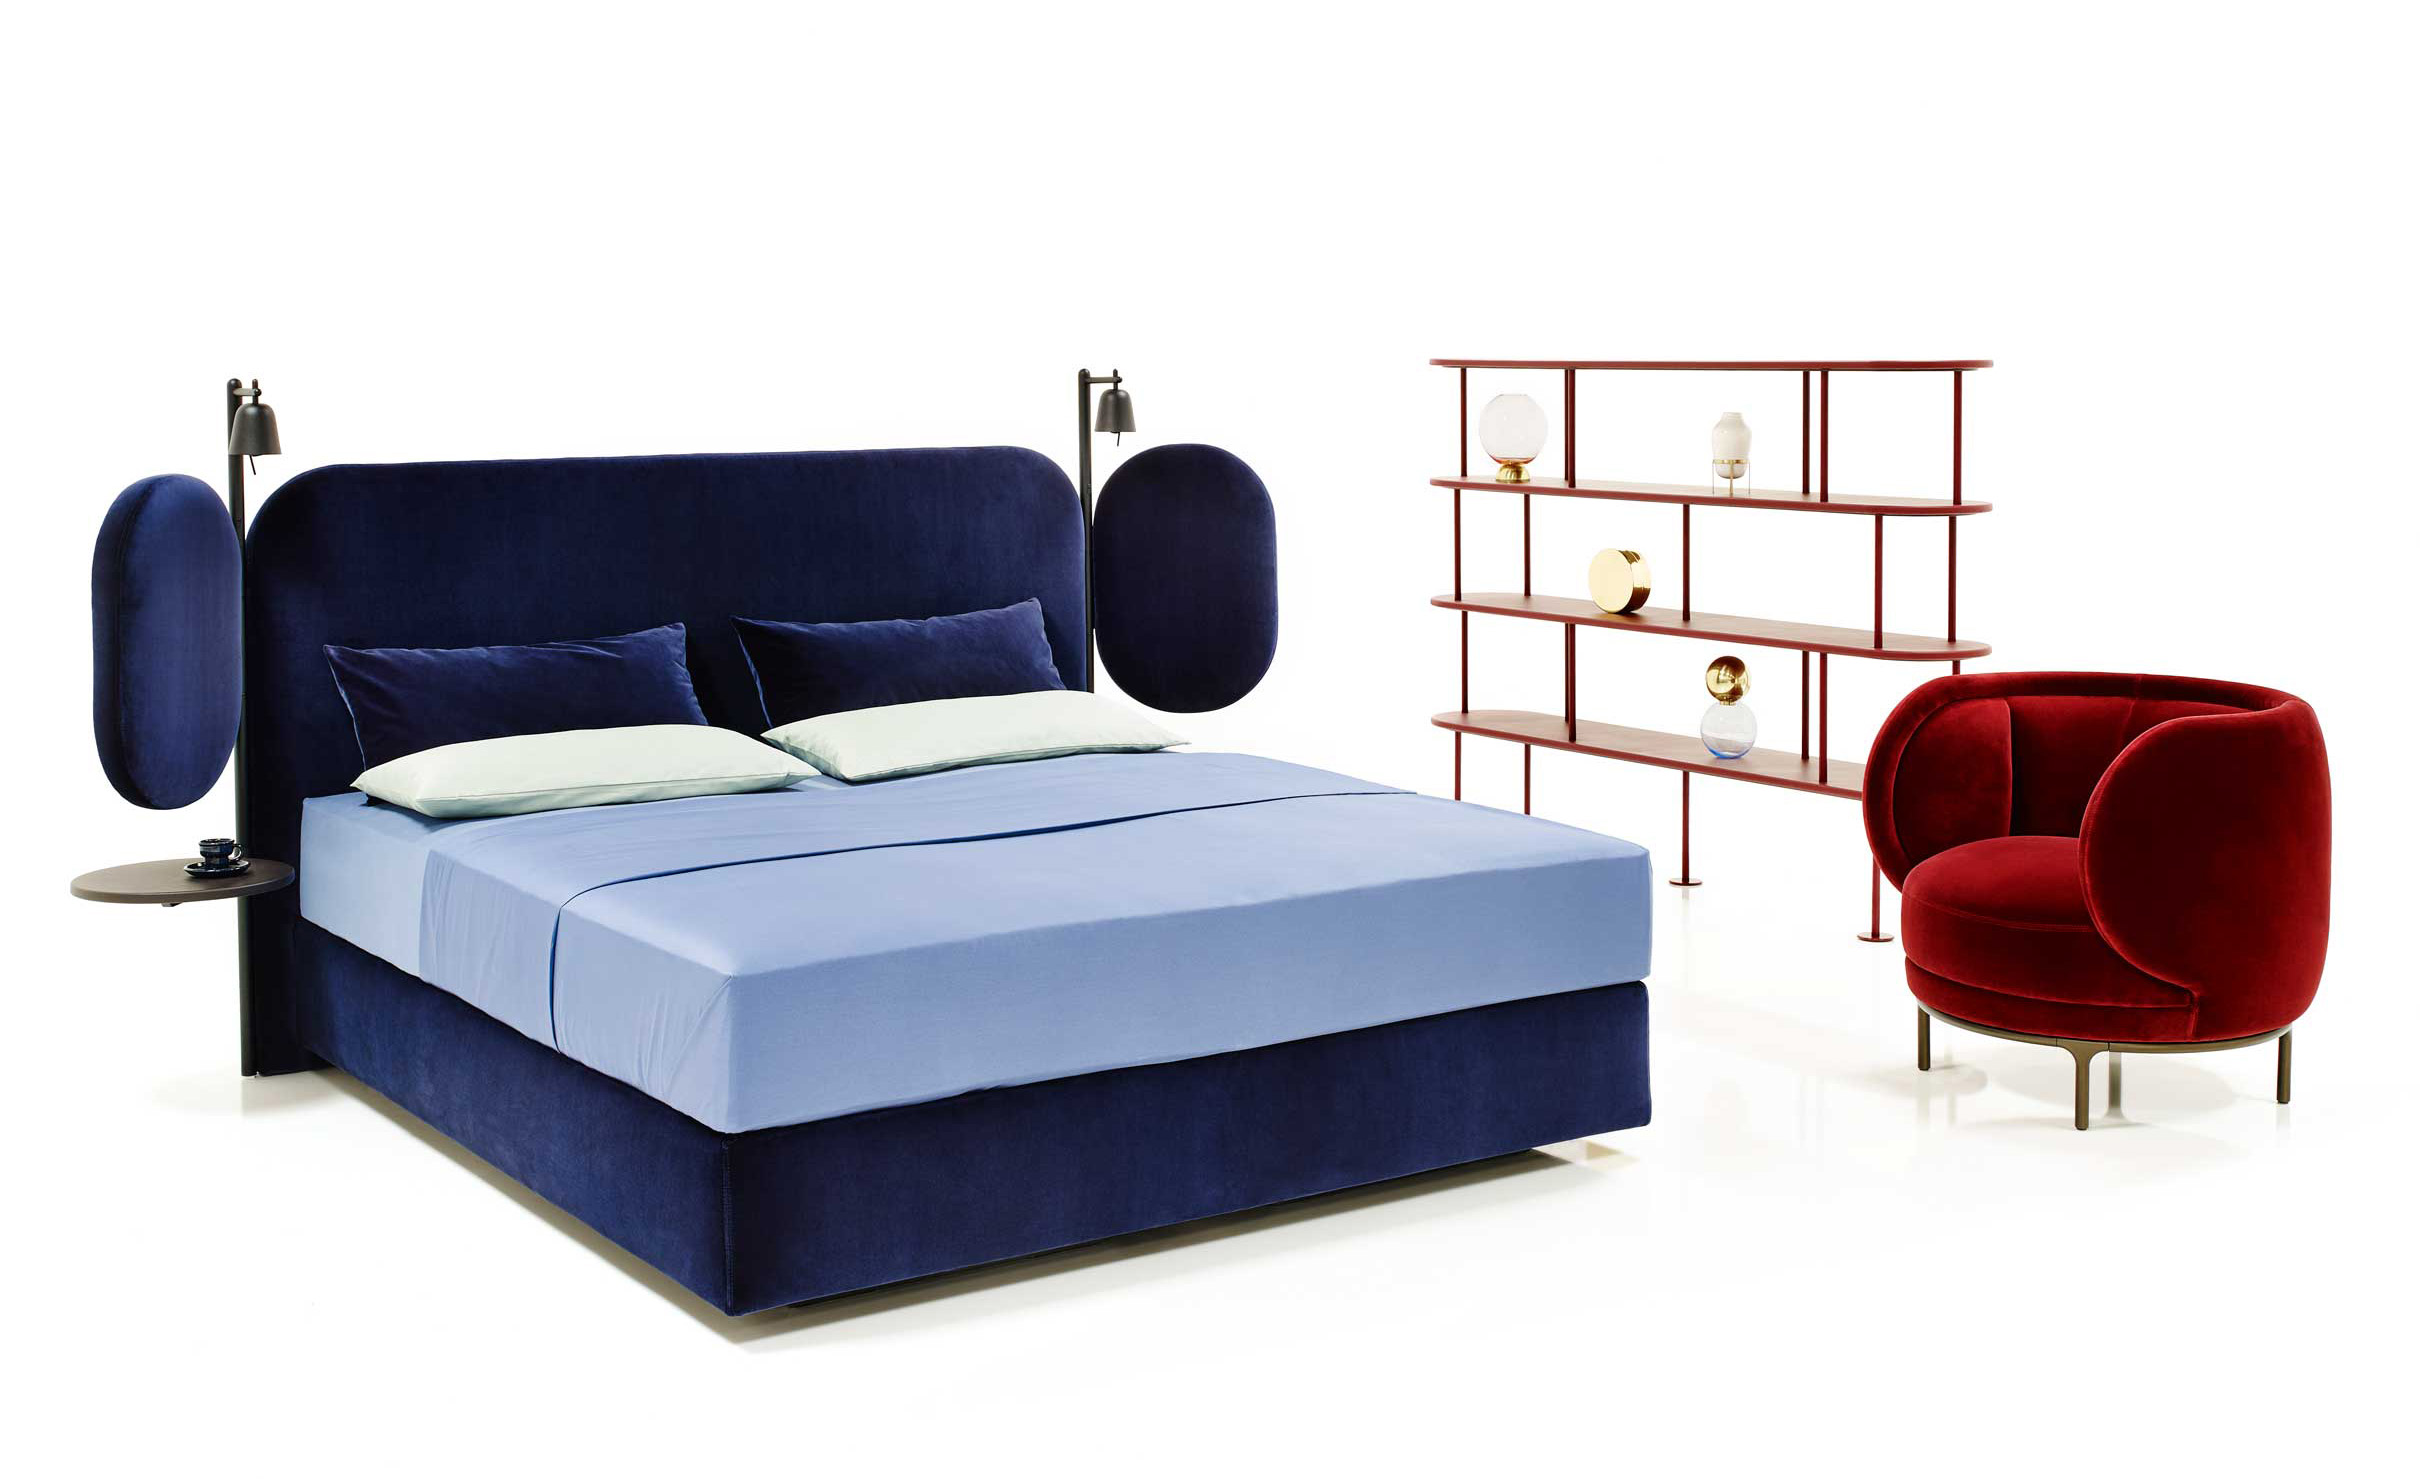 Wings Bed by Wittmann at Salone del Mobile 2017 | Yellowtrace